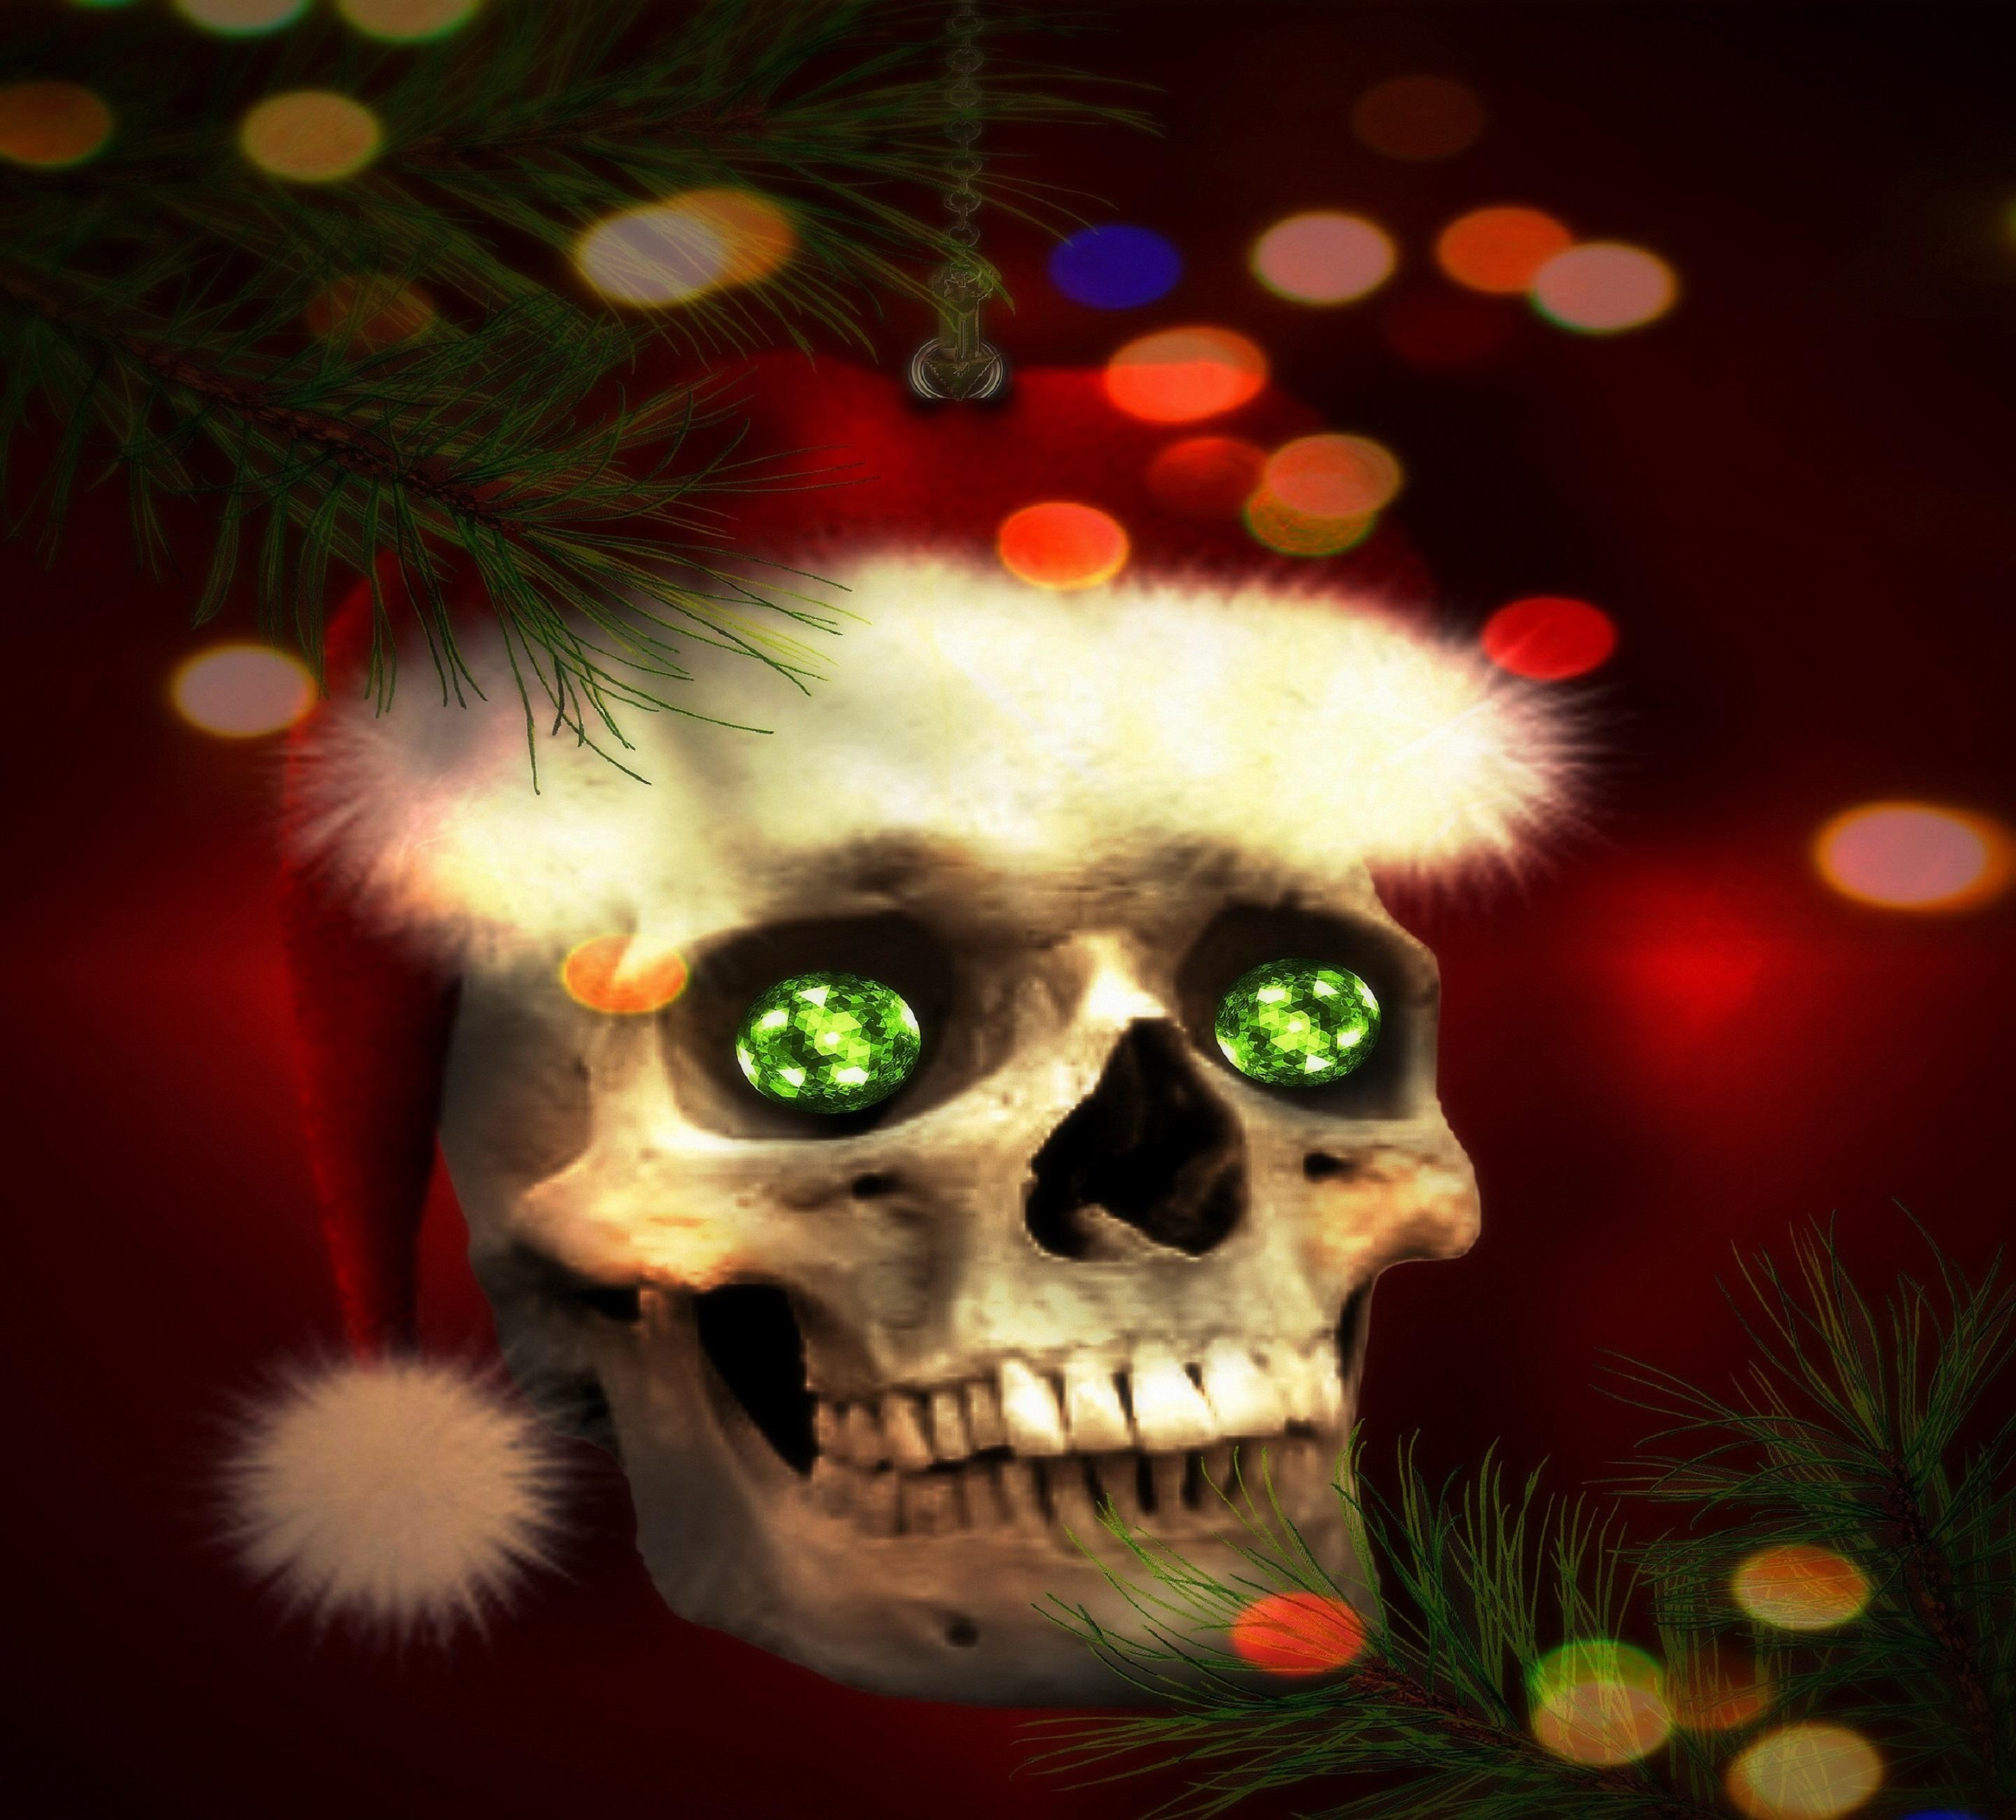 Home Screen Cute Wallpapers For Girls Download Christmas Skull Wallpaper Gallery